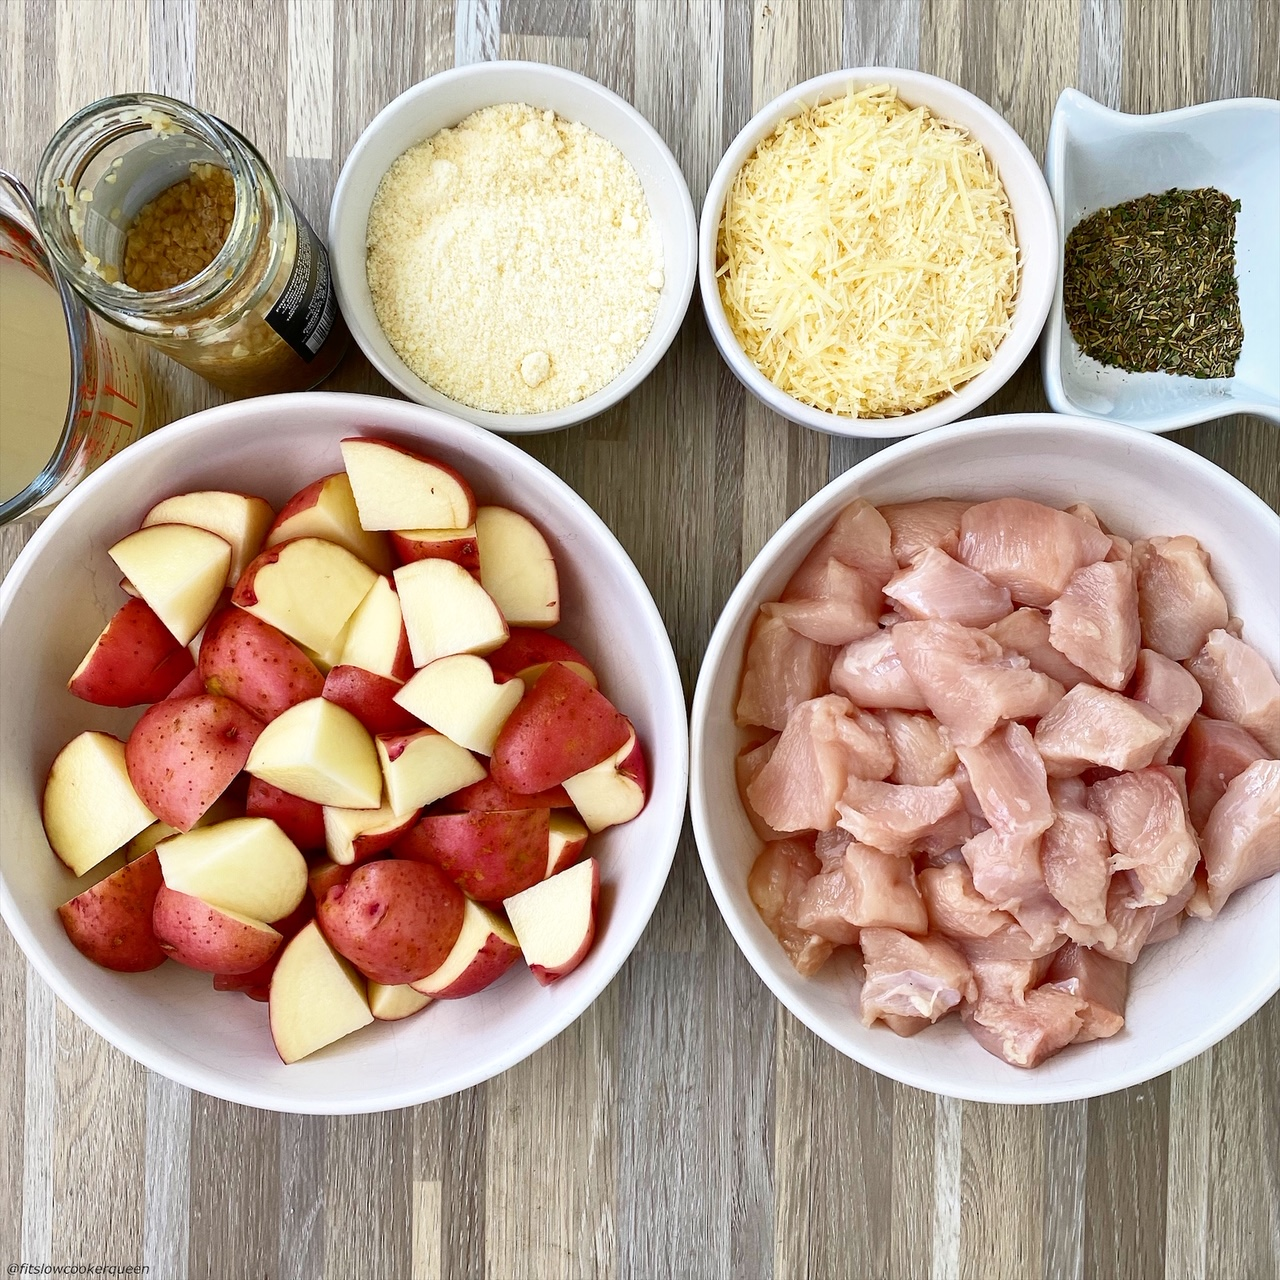 ingredients for {VIDEO} Slow CookerInstant Pot Garlic Parmesan Chicken & Potatoes laid out on a table